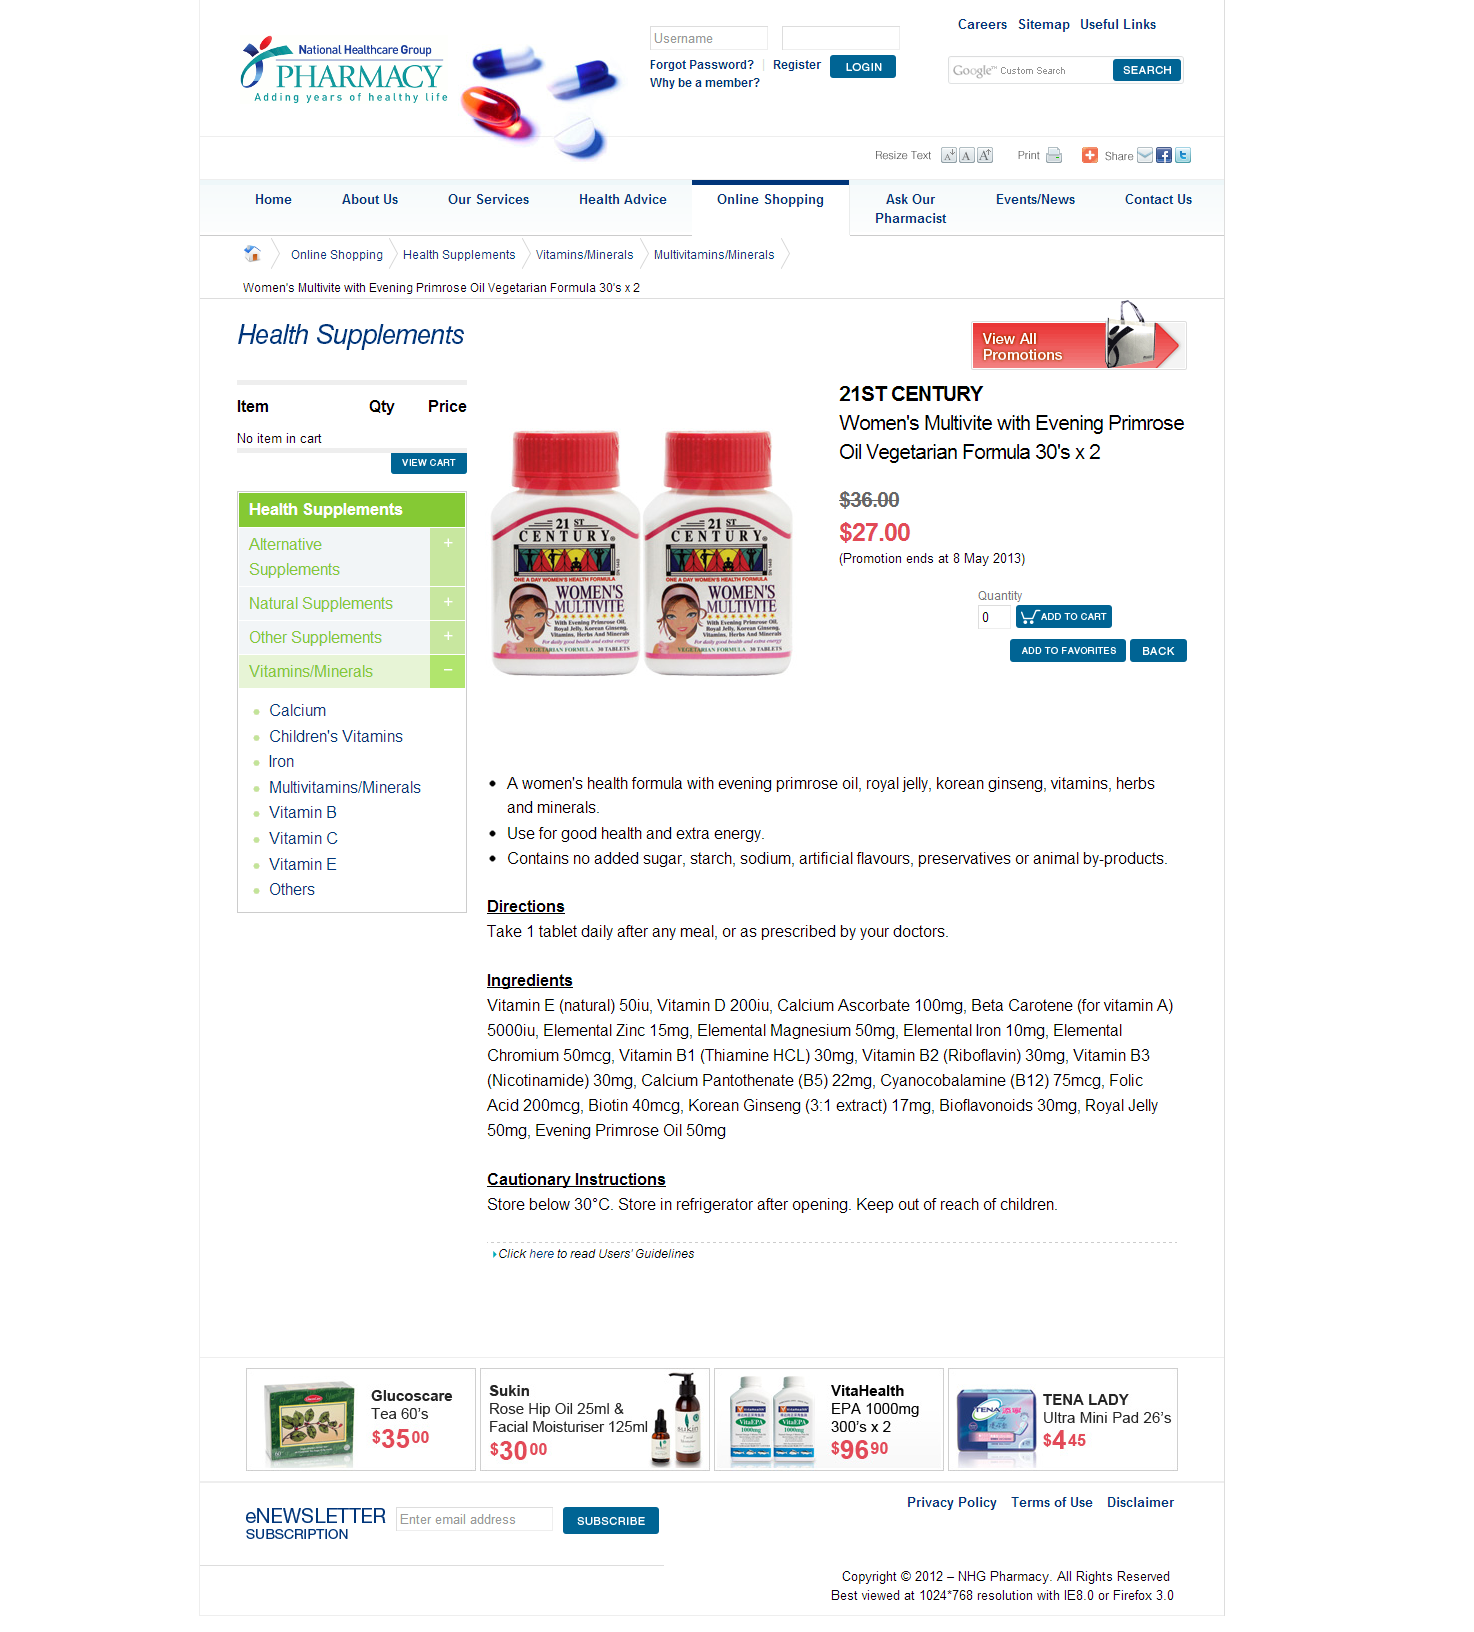 NHG Pharmacy Corporate and Ecommerce Portal Image 9